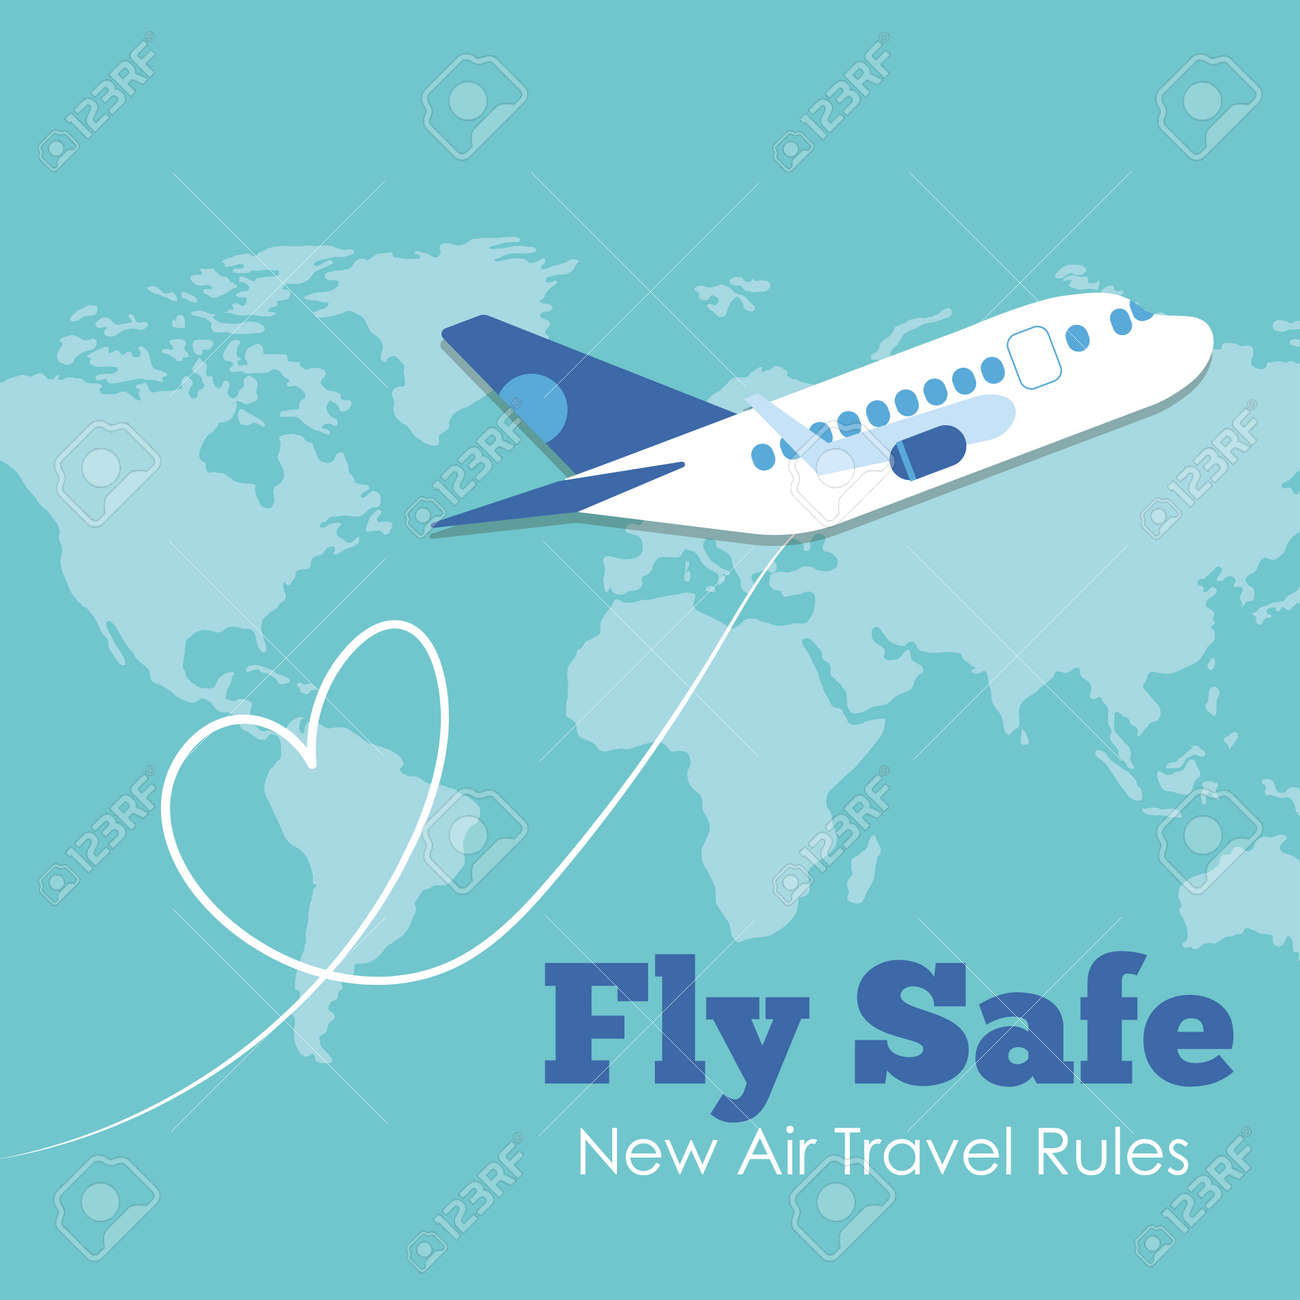 fly safe campaign lettering poster with airplane flying and earth maps vector illustration design - 158603174